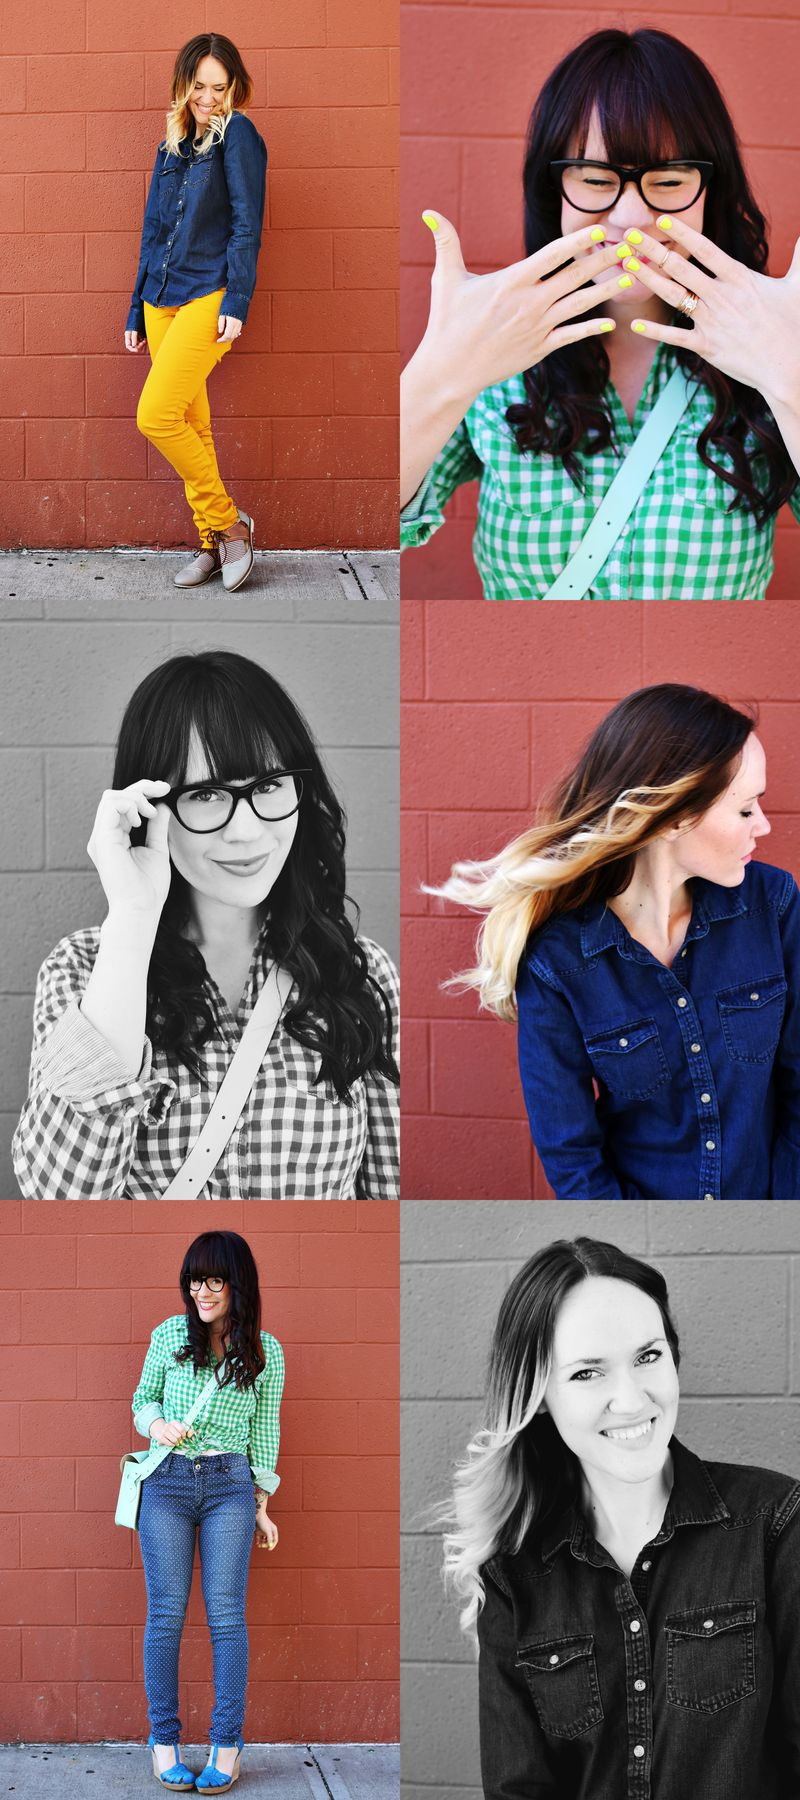 Sister Style- We Love Color!